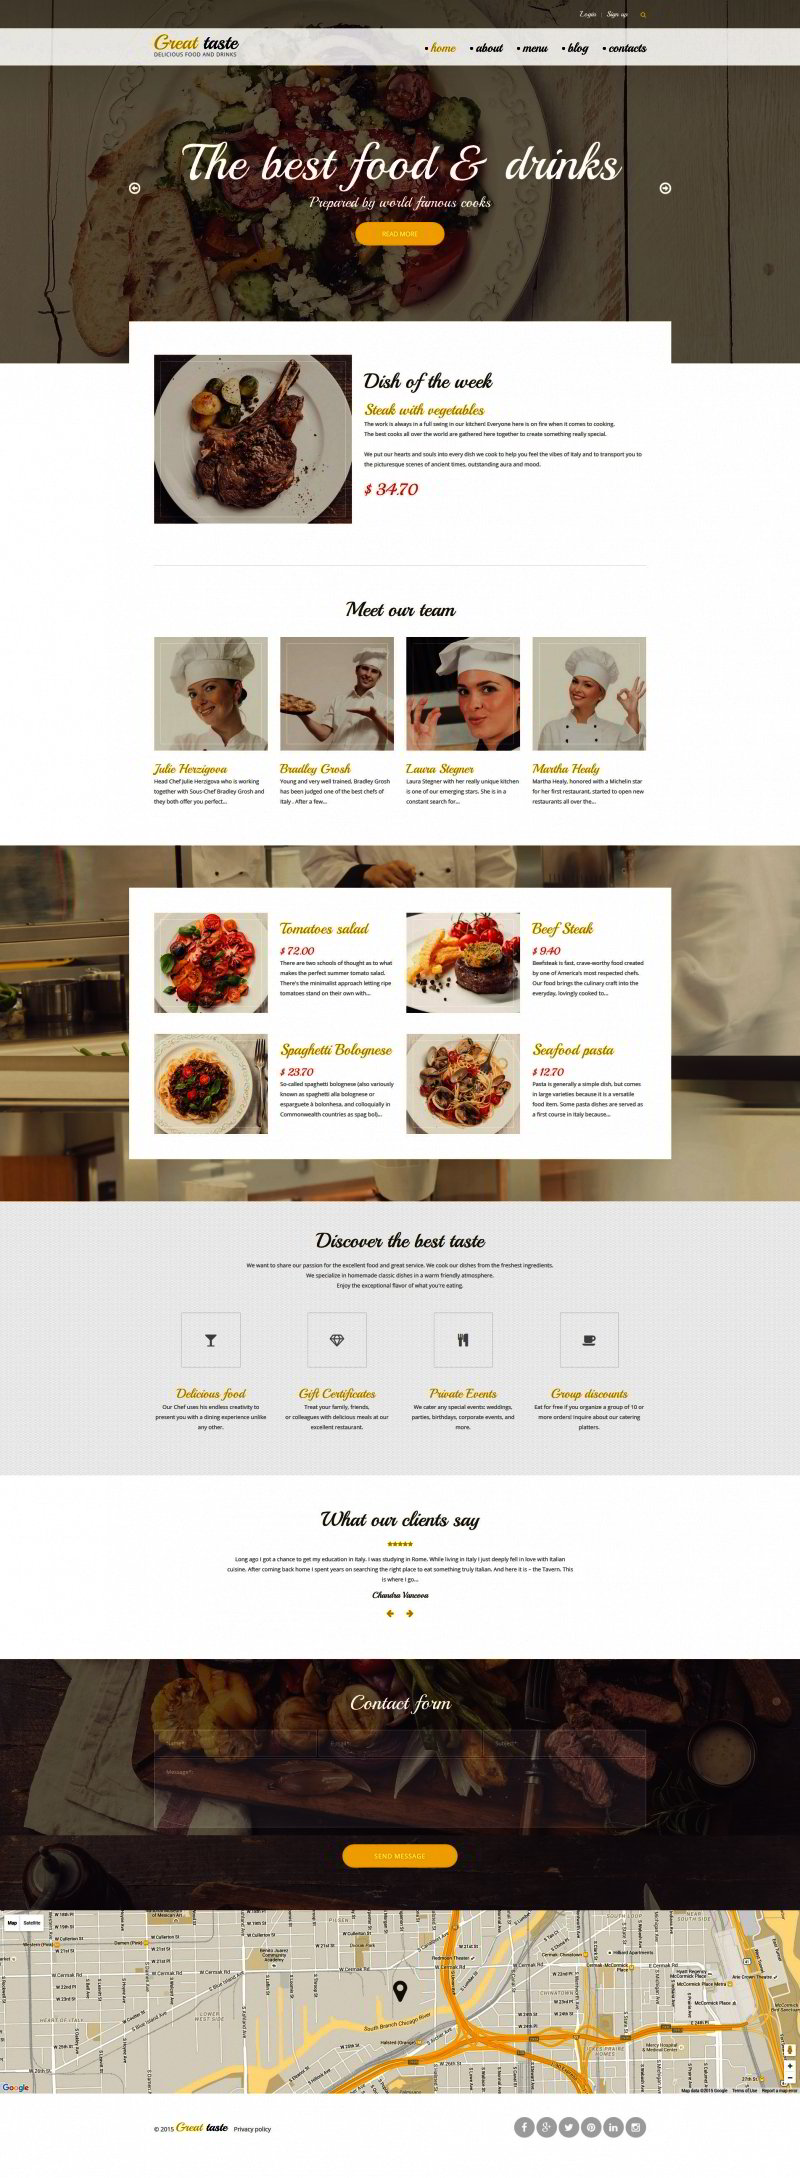 Website soft colors - This Responsive Drupal Template Has A Potential To Become A Truly Successful Restaurant Online Presence The Soft Color Palette And Focus On The Images